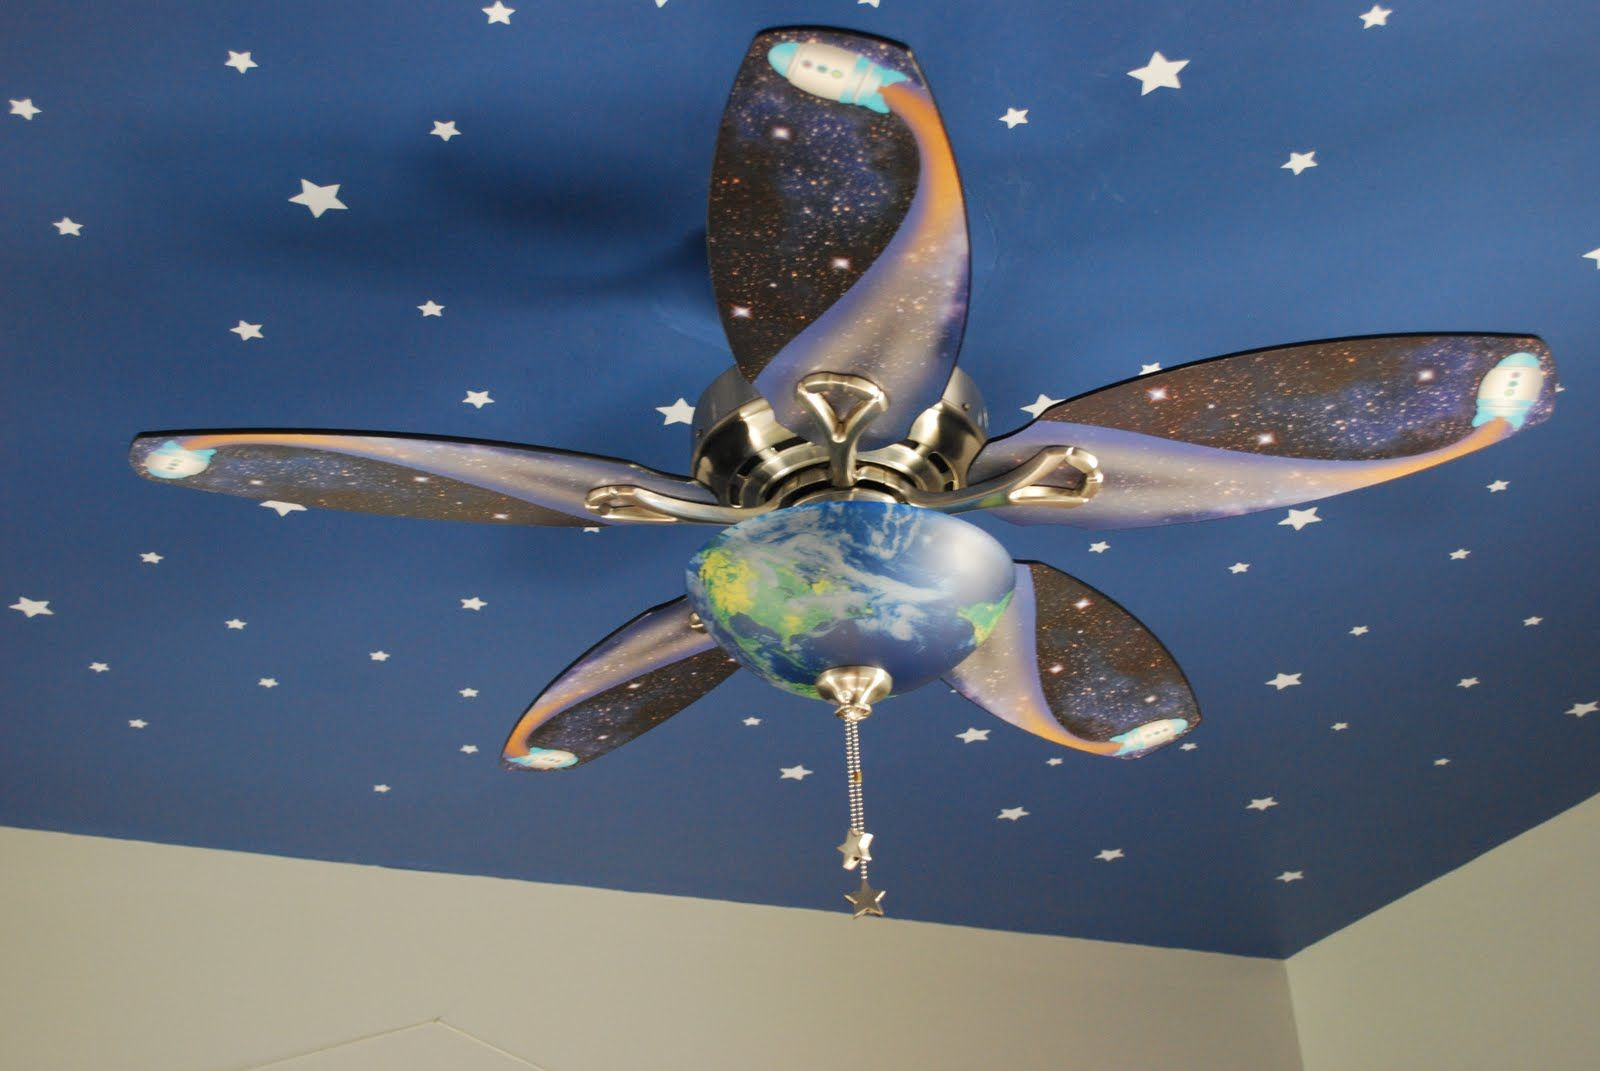 Kids bedroom ceiling lights - Night Time Themed Kids Room Fussy Monkey Business E S Space Themed Room